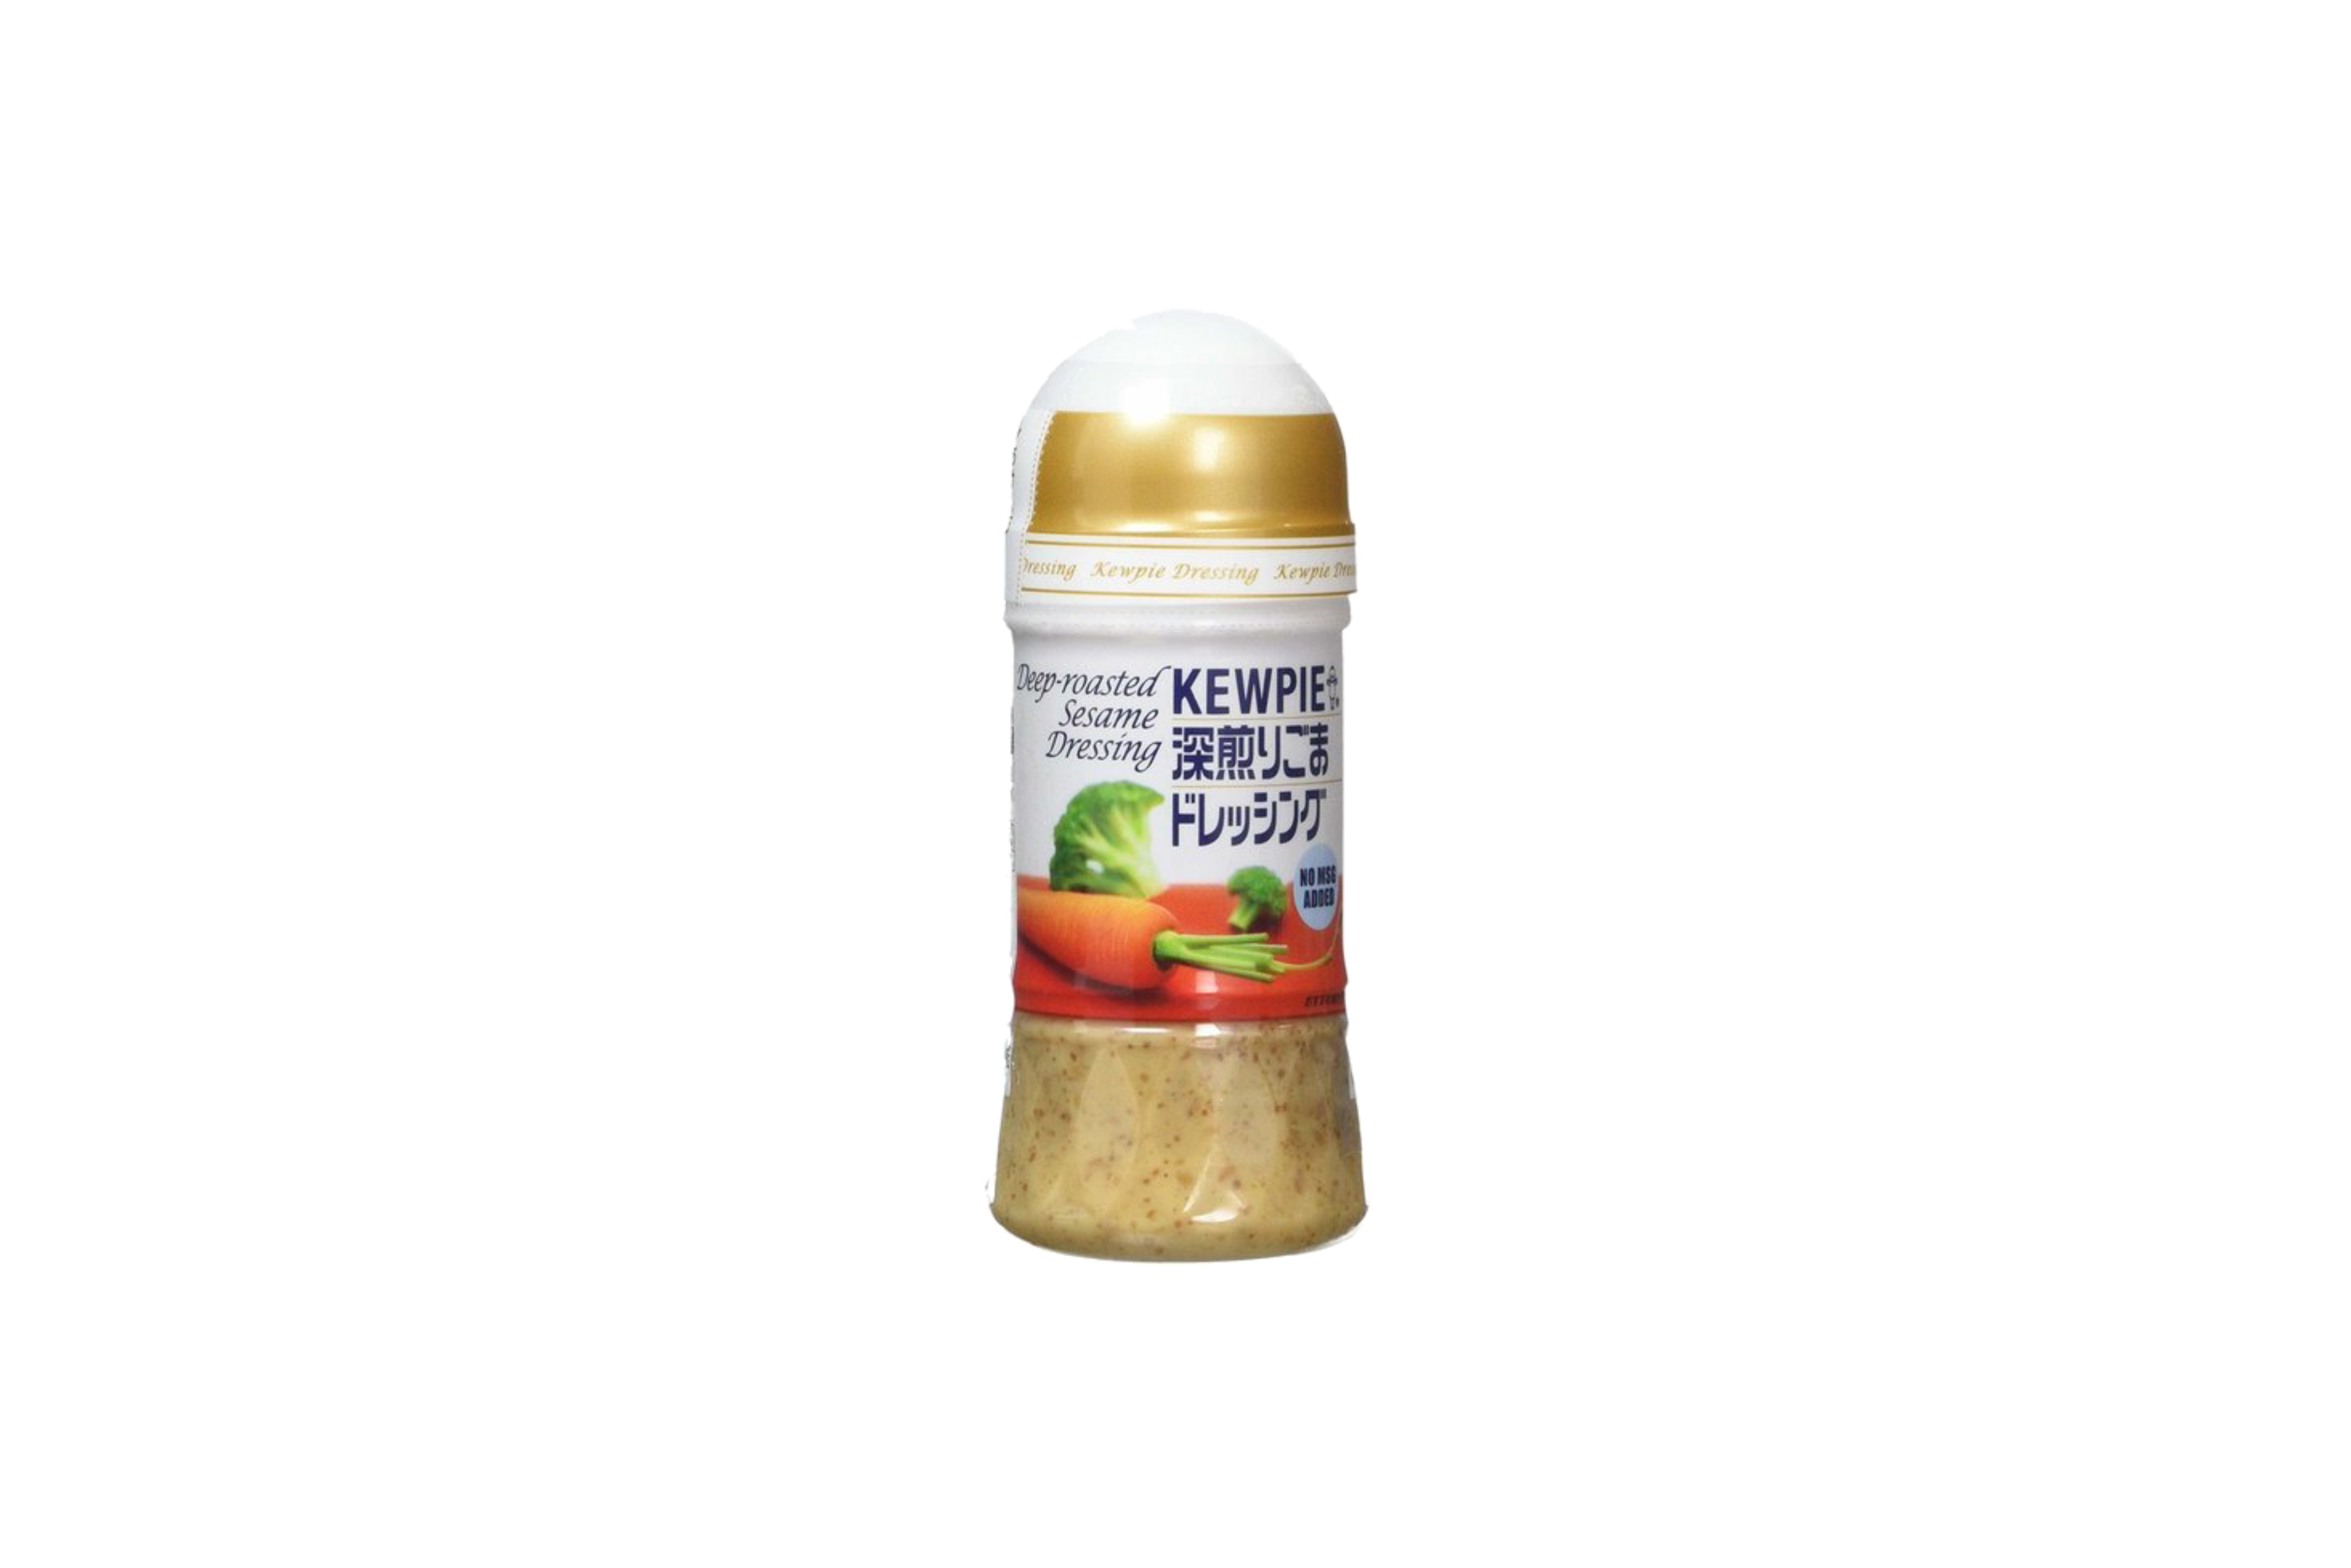 Kewpie Deep-Roasted Sesame Dressing (No MSG) | Eatoo UK